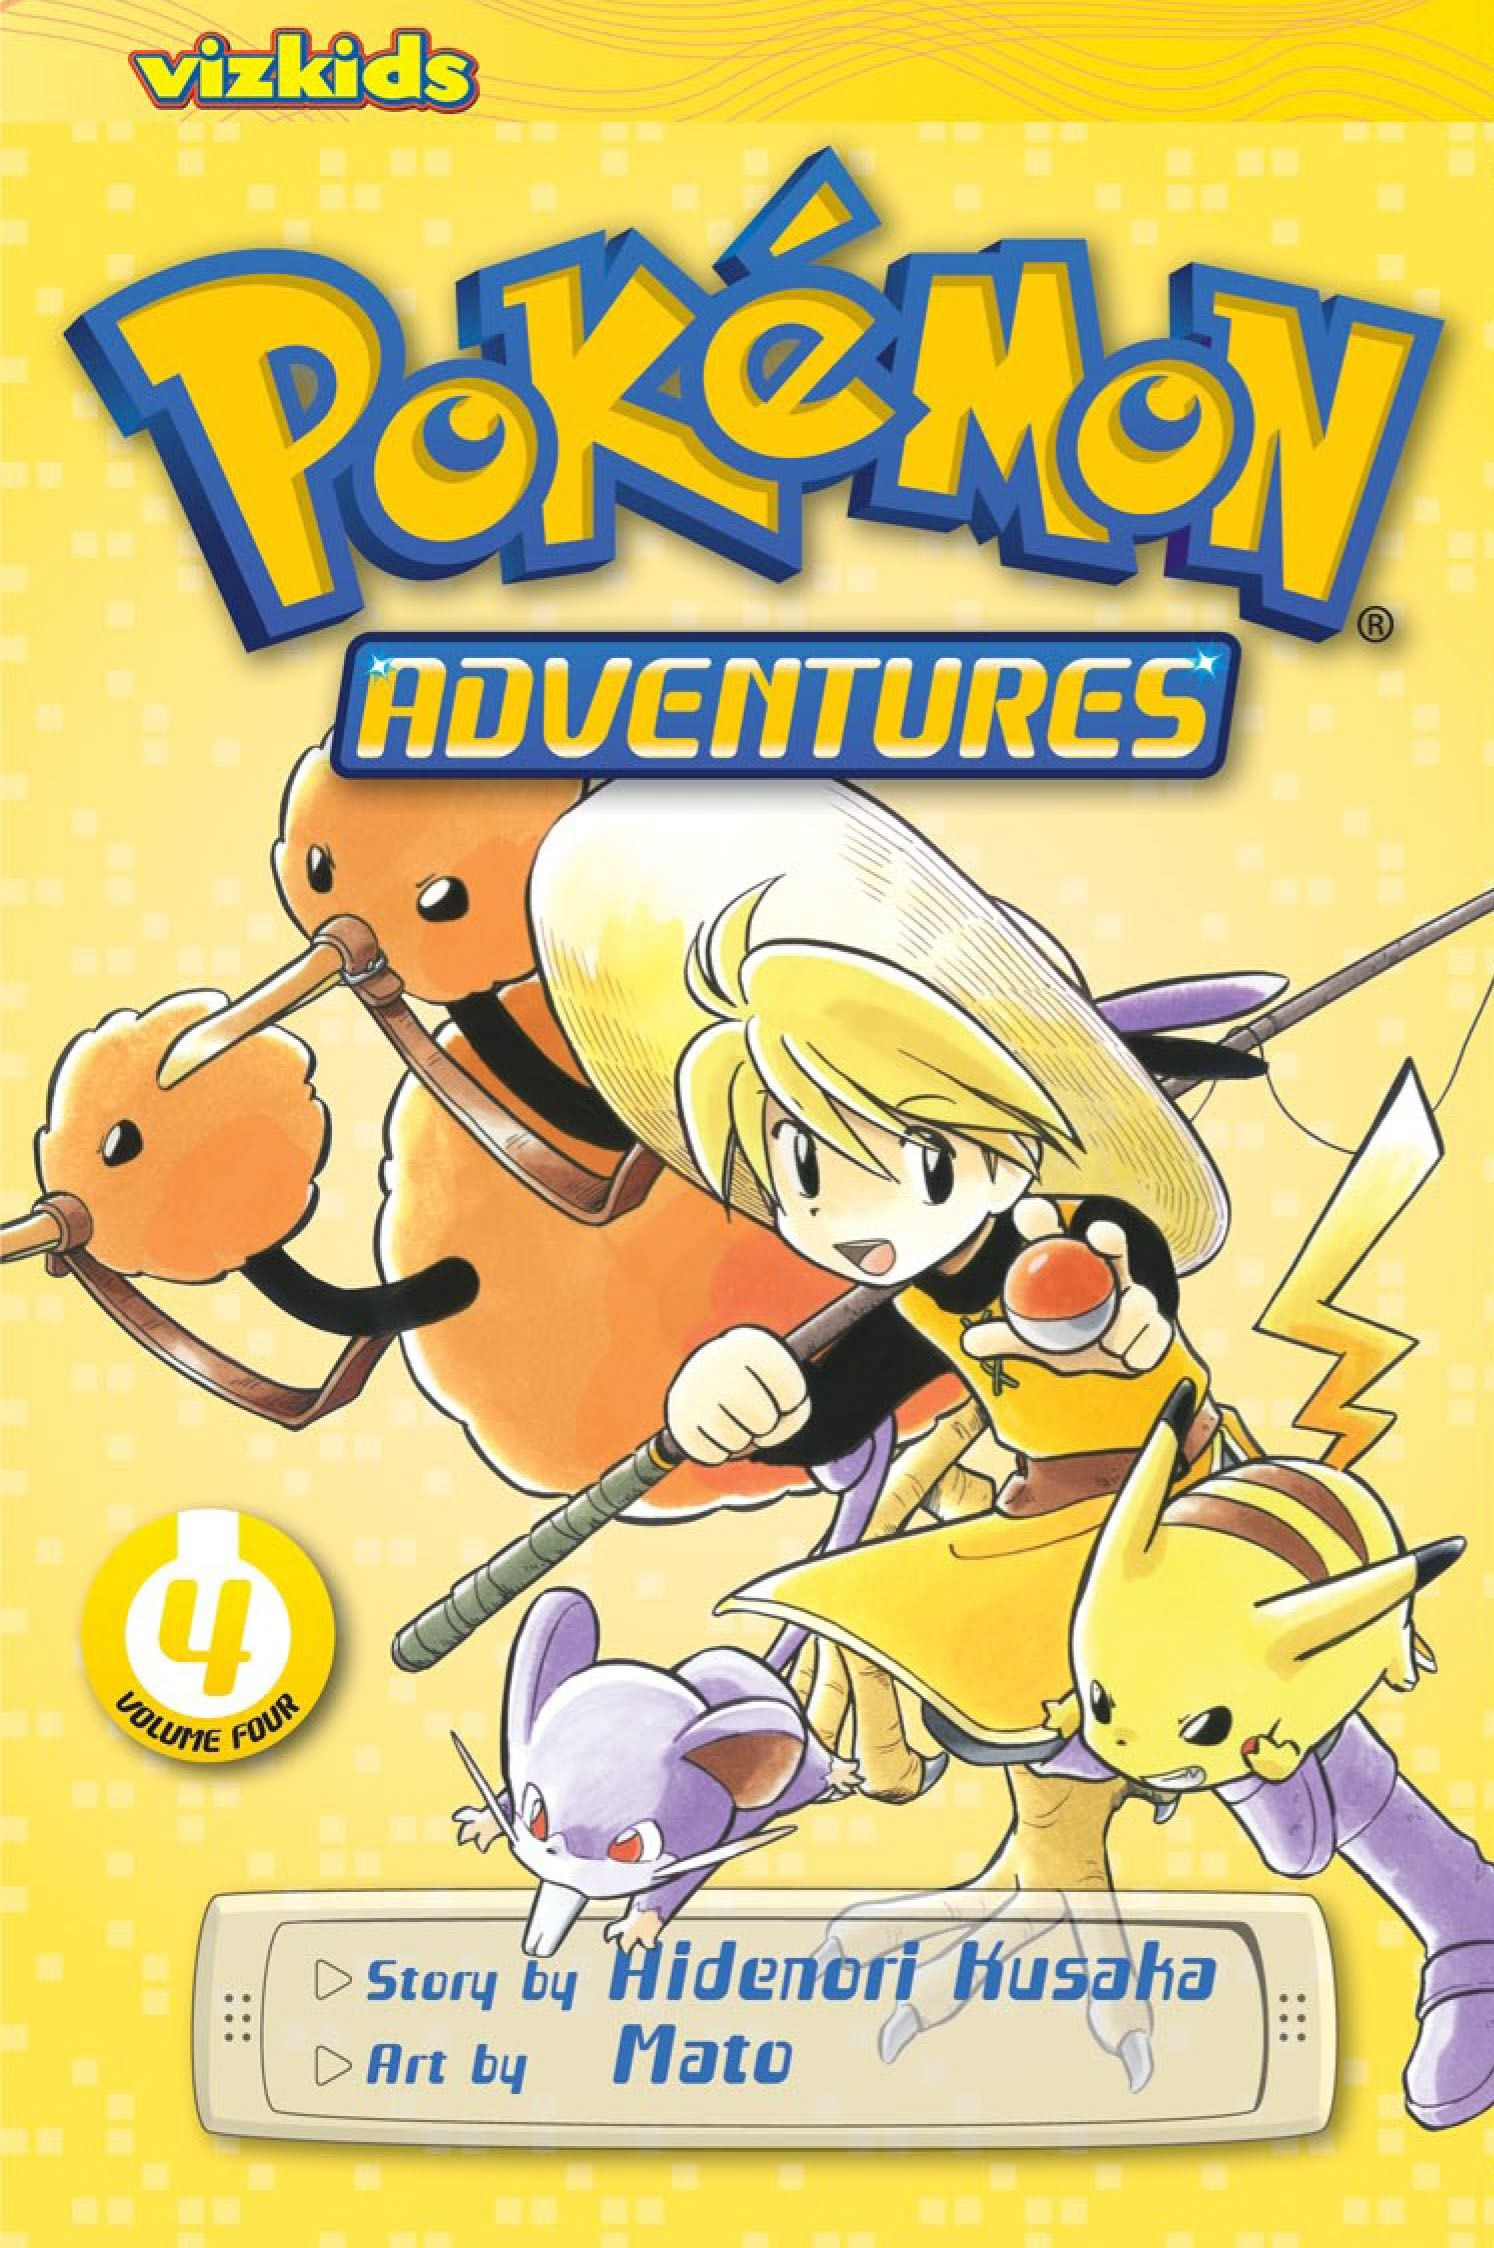 Pokémon Adventures, Vol. 4 (2nd Edition) by Hidenori Kusaka